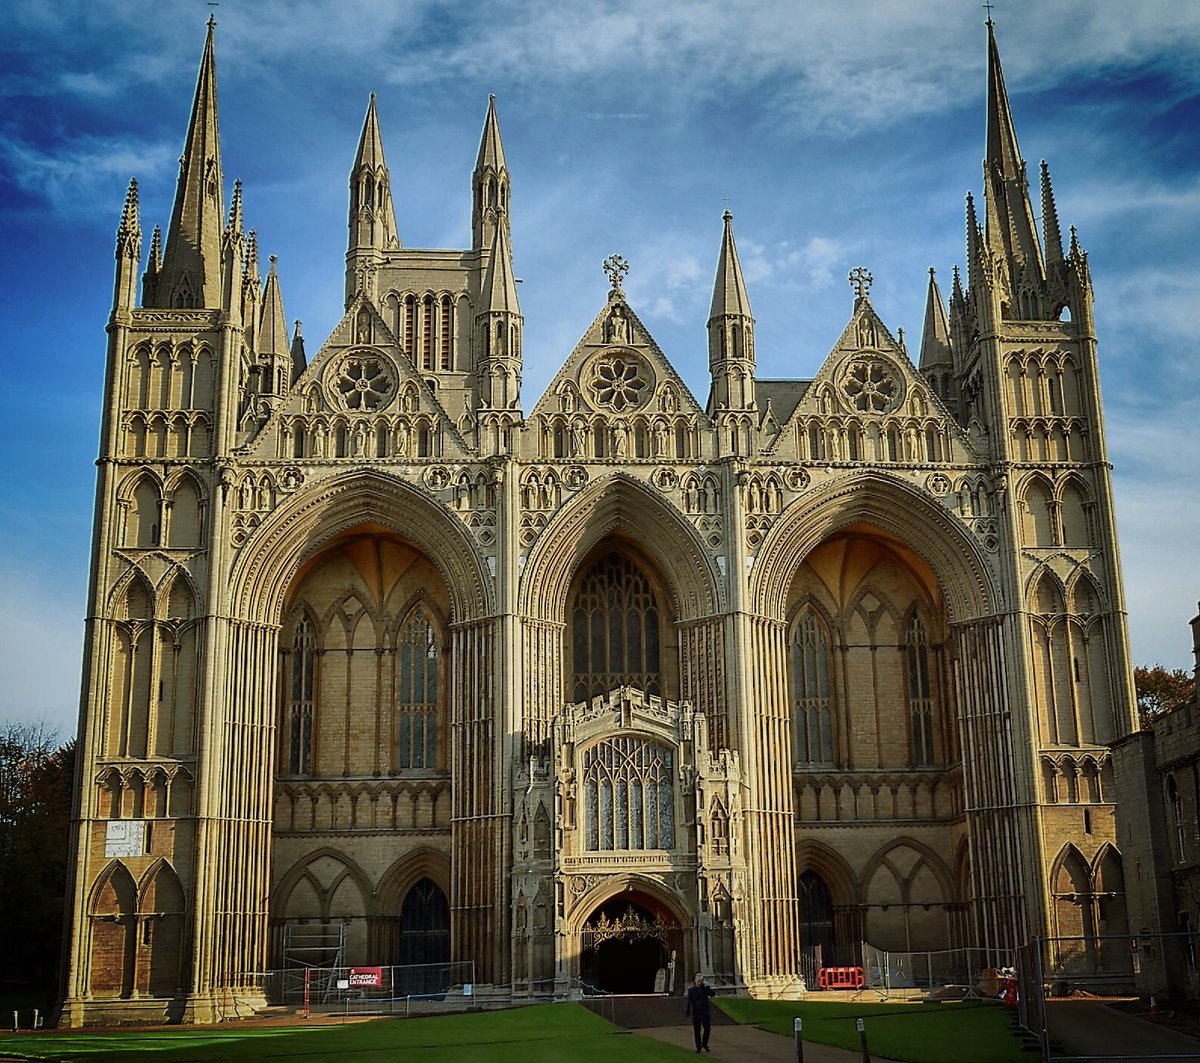 The West Front of Peterborough Cathedral, completed by 1230. 1230! Madness #tbt https://t.co/WNI3XhMOp4